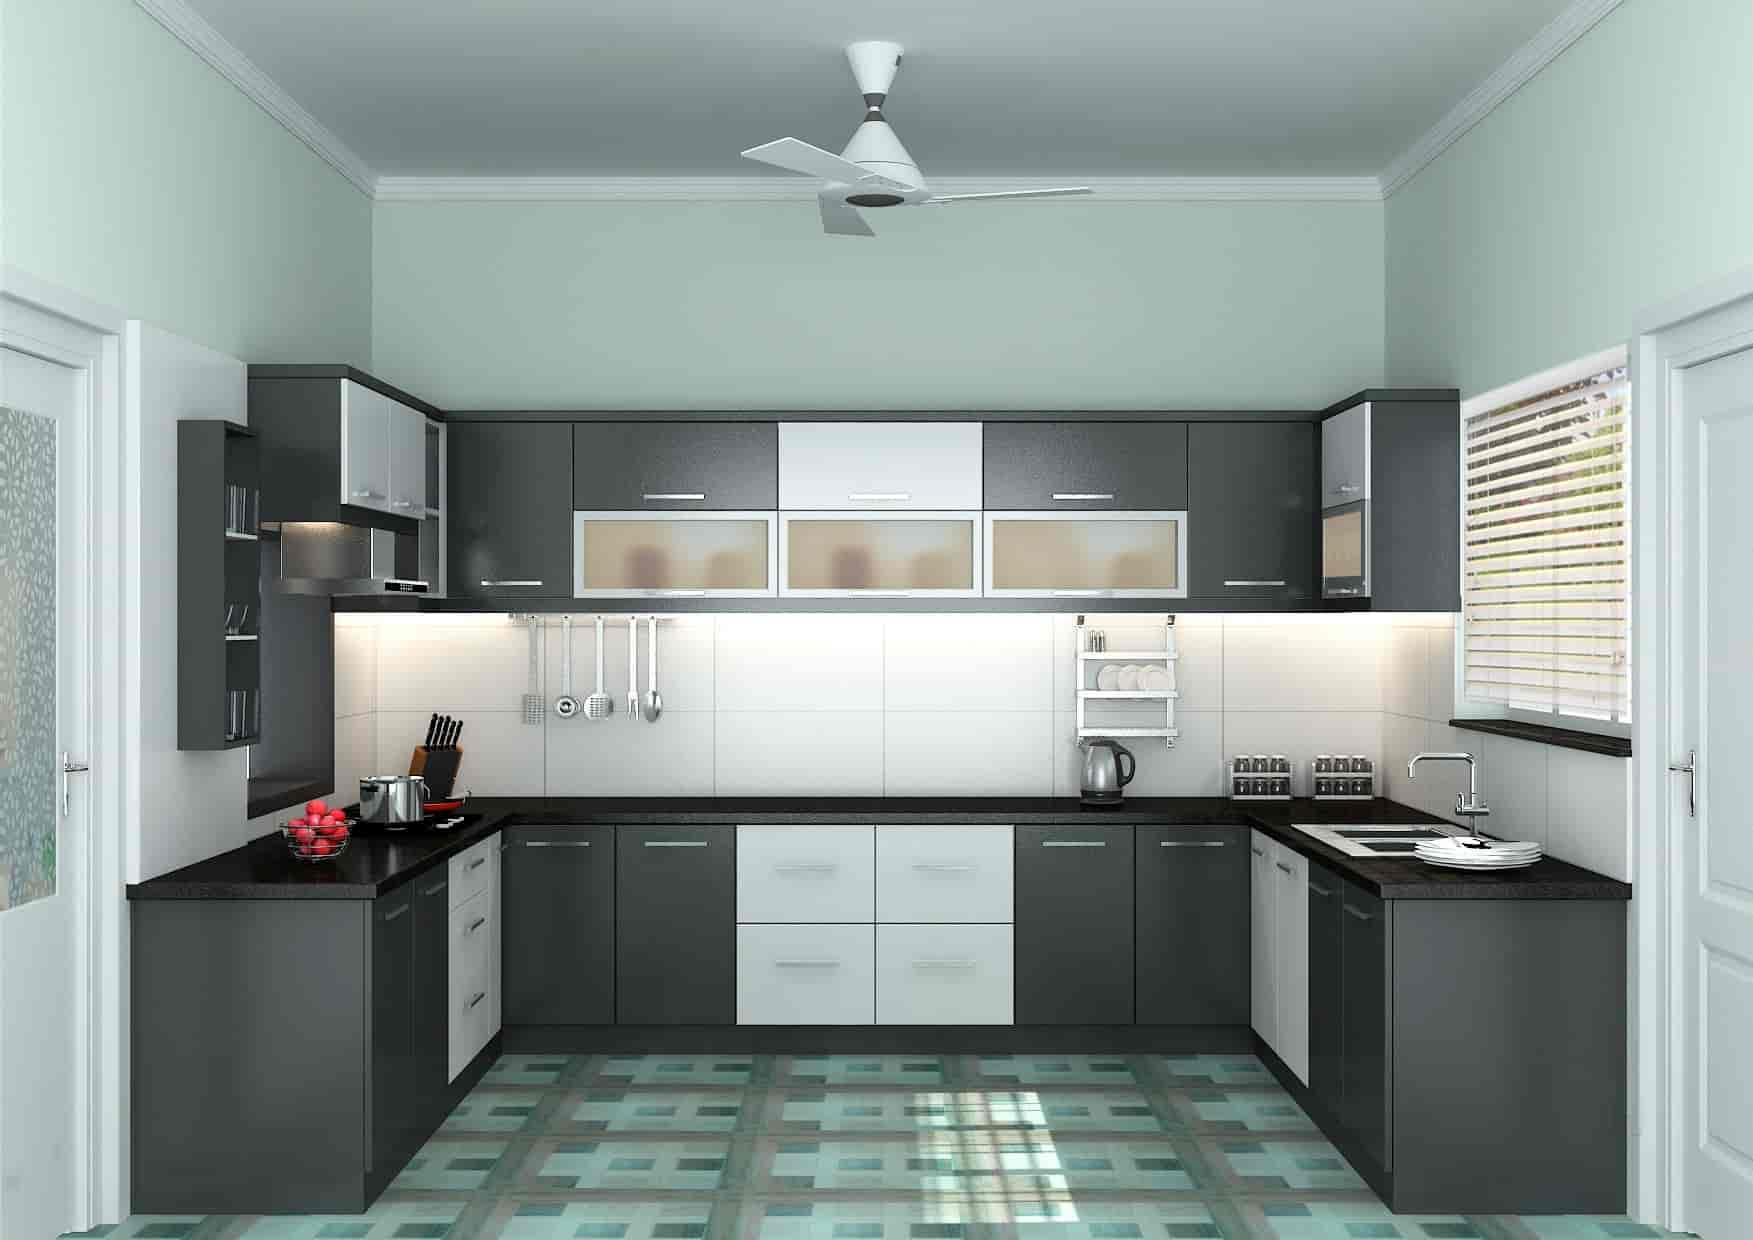 Space Kitchens - Interior Designers in Kottayam - Justdial